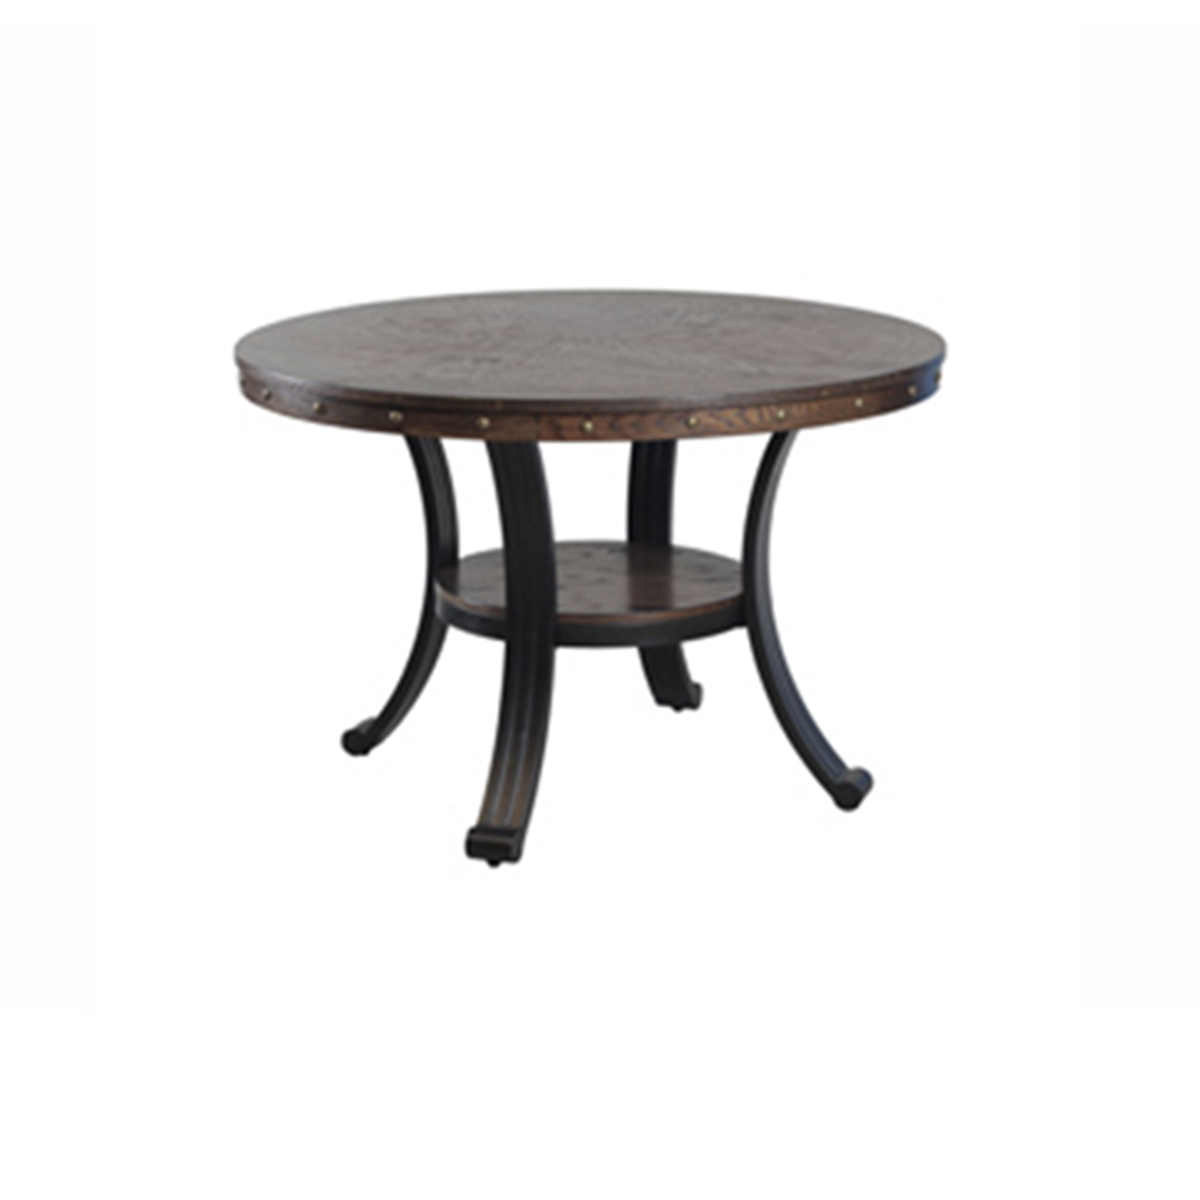 Powell Franklin Dining Table - Rustic Umber